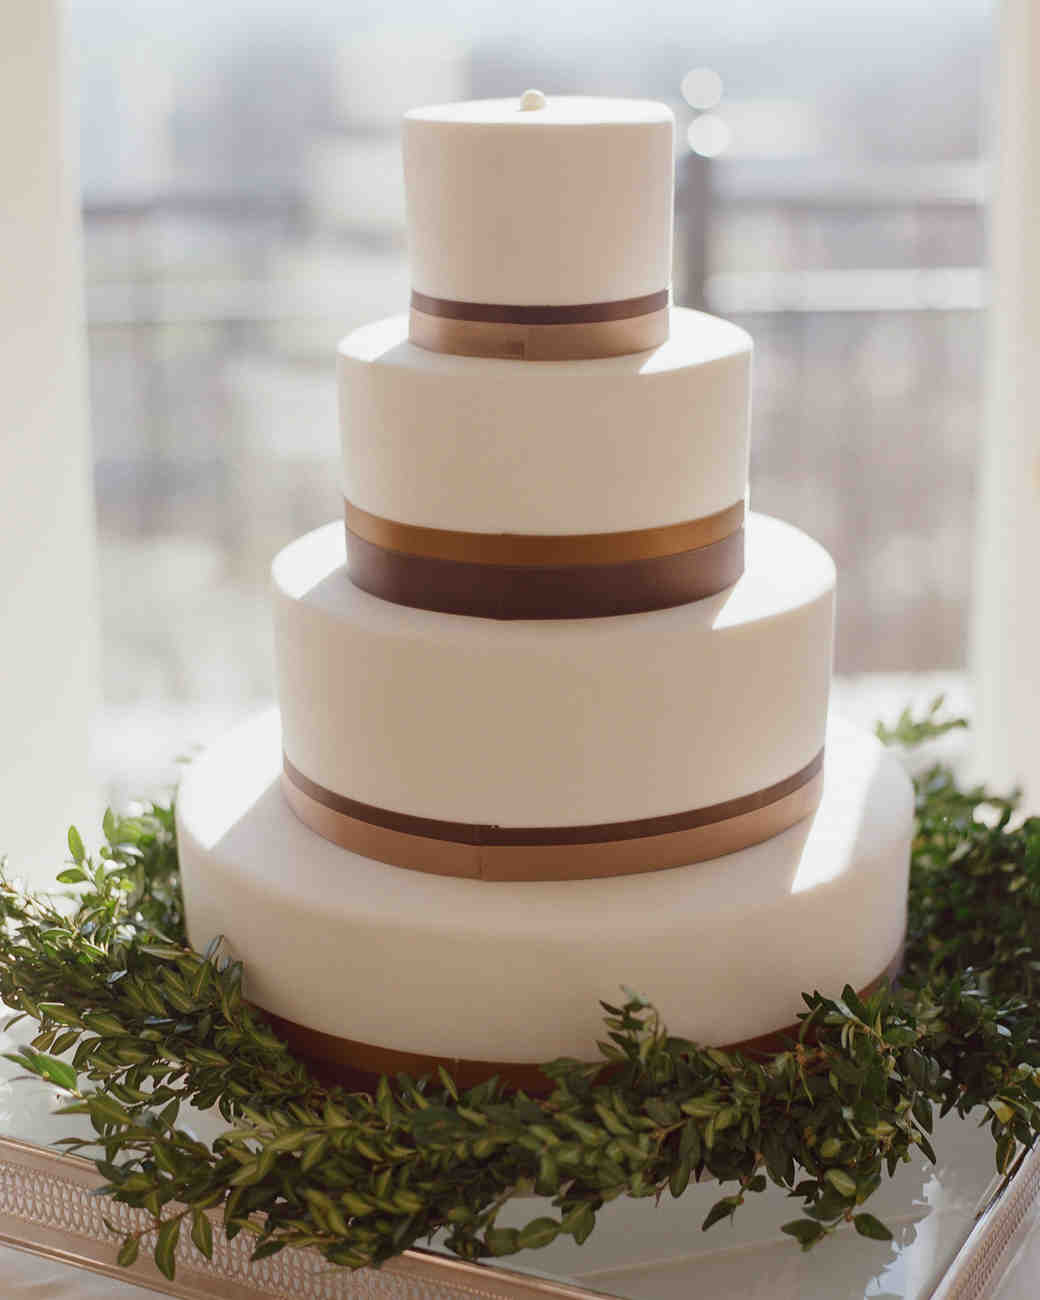 40 simple wedding cakes that are gorgeously understated martha stewart weddings. Black Bedroom Furniture Sets. Home Design Ideas